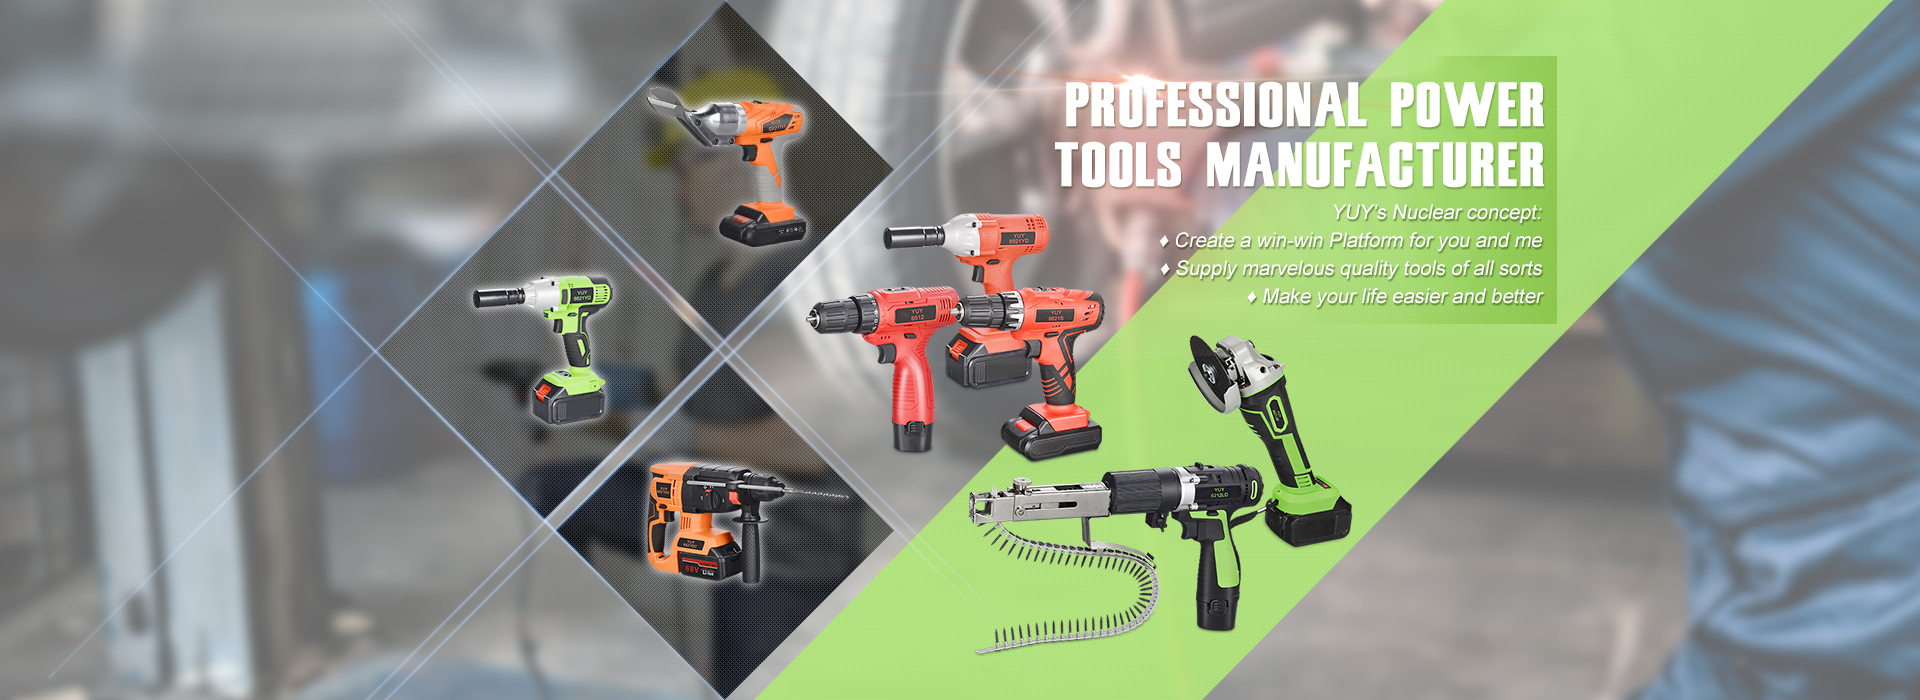 PROFESSIONAL POWER TOOLS MANUFACTURER